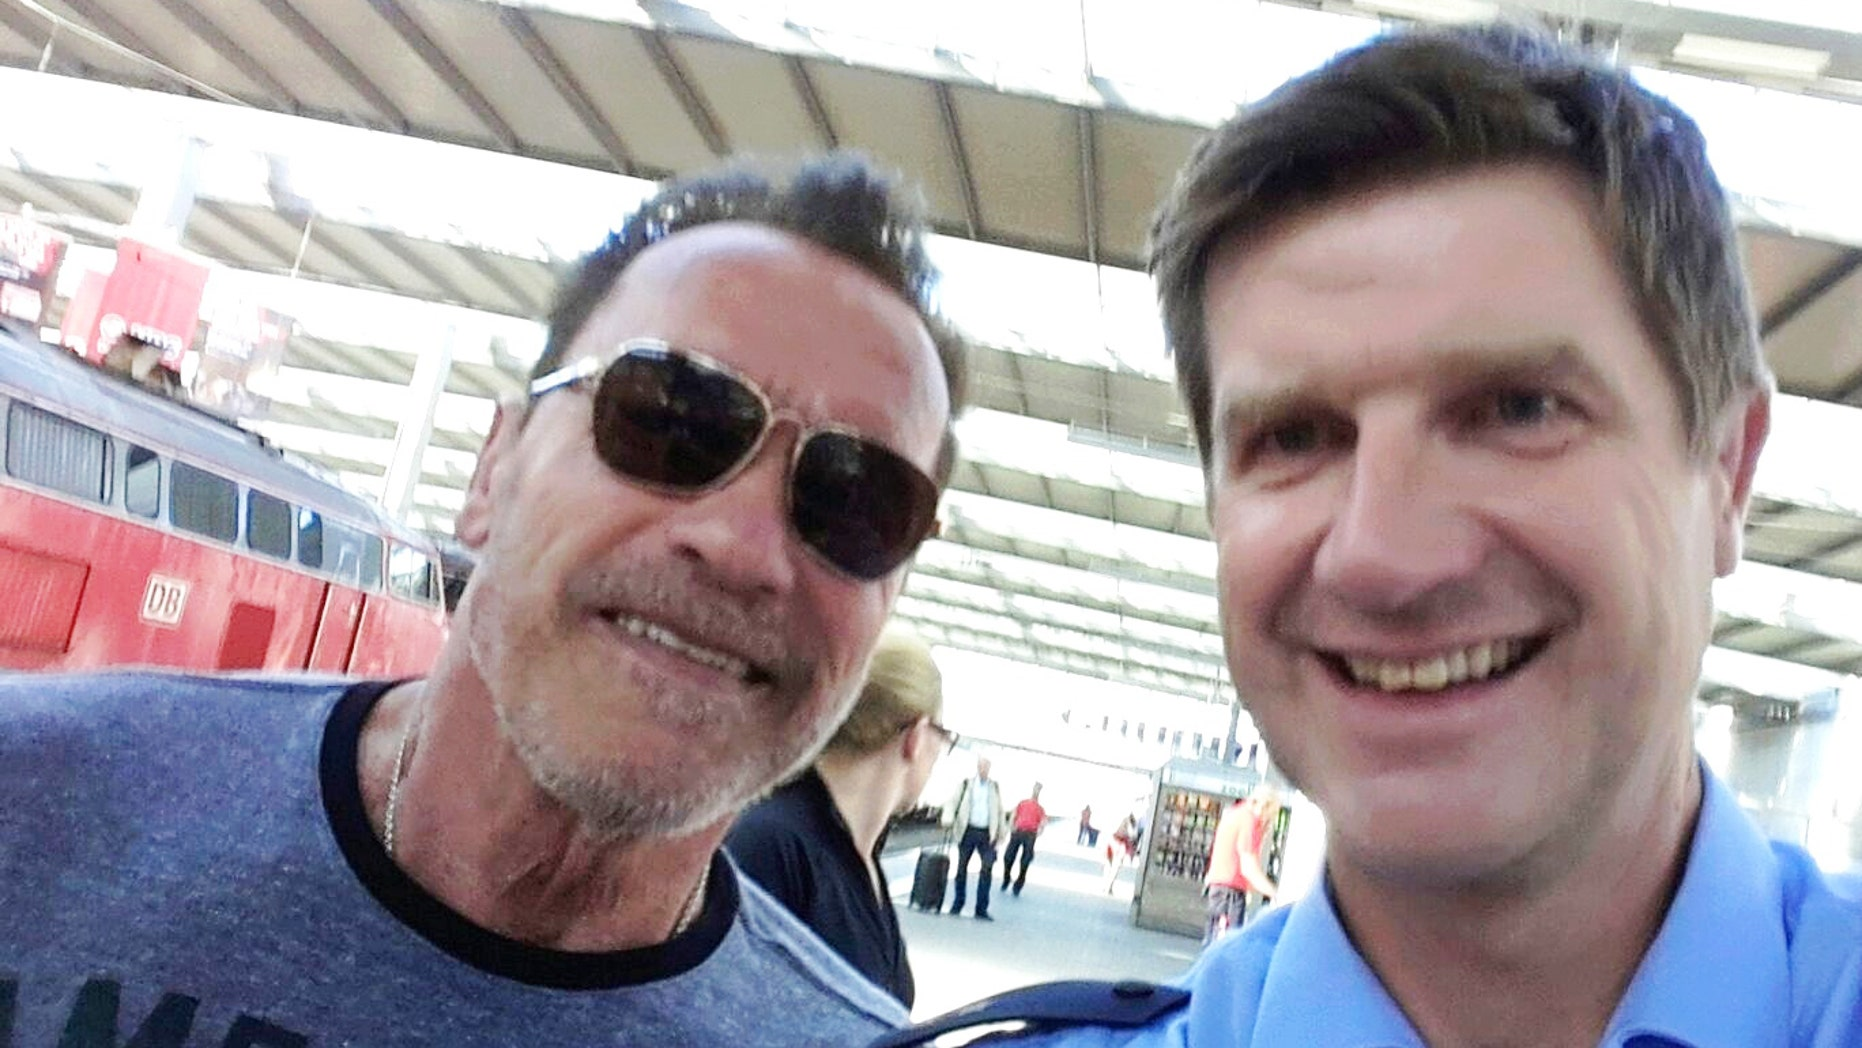 Arnold Schwarzenegger poses with Munich police officer Stefan Schmitt after being stopped for cycling too fast in a Munich train station.